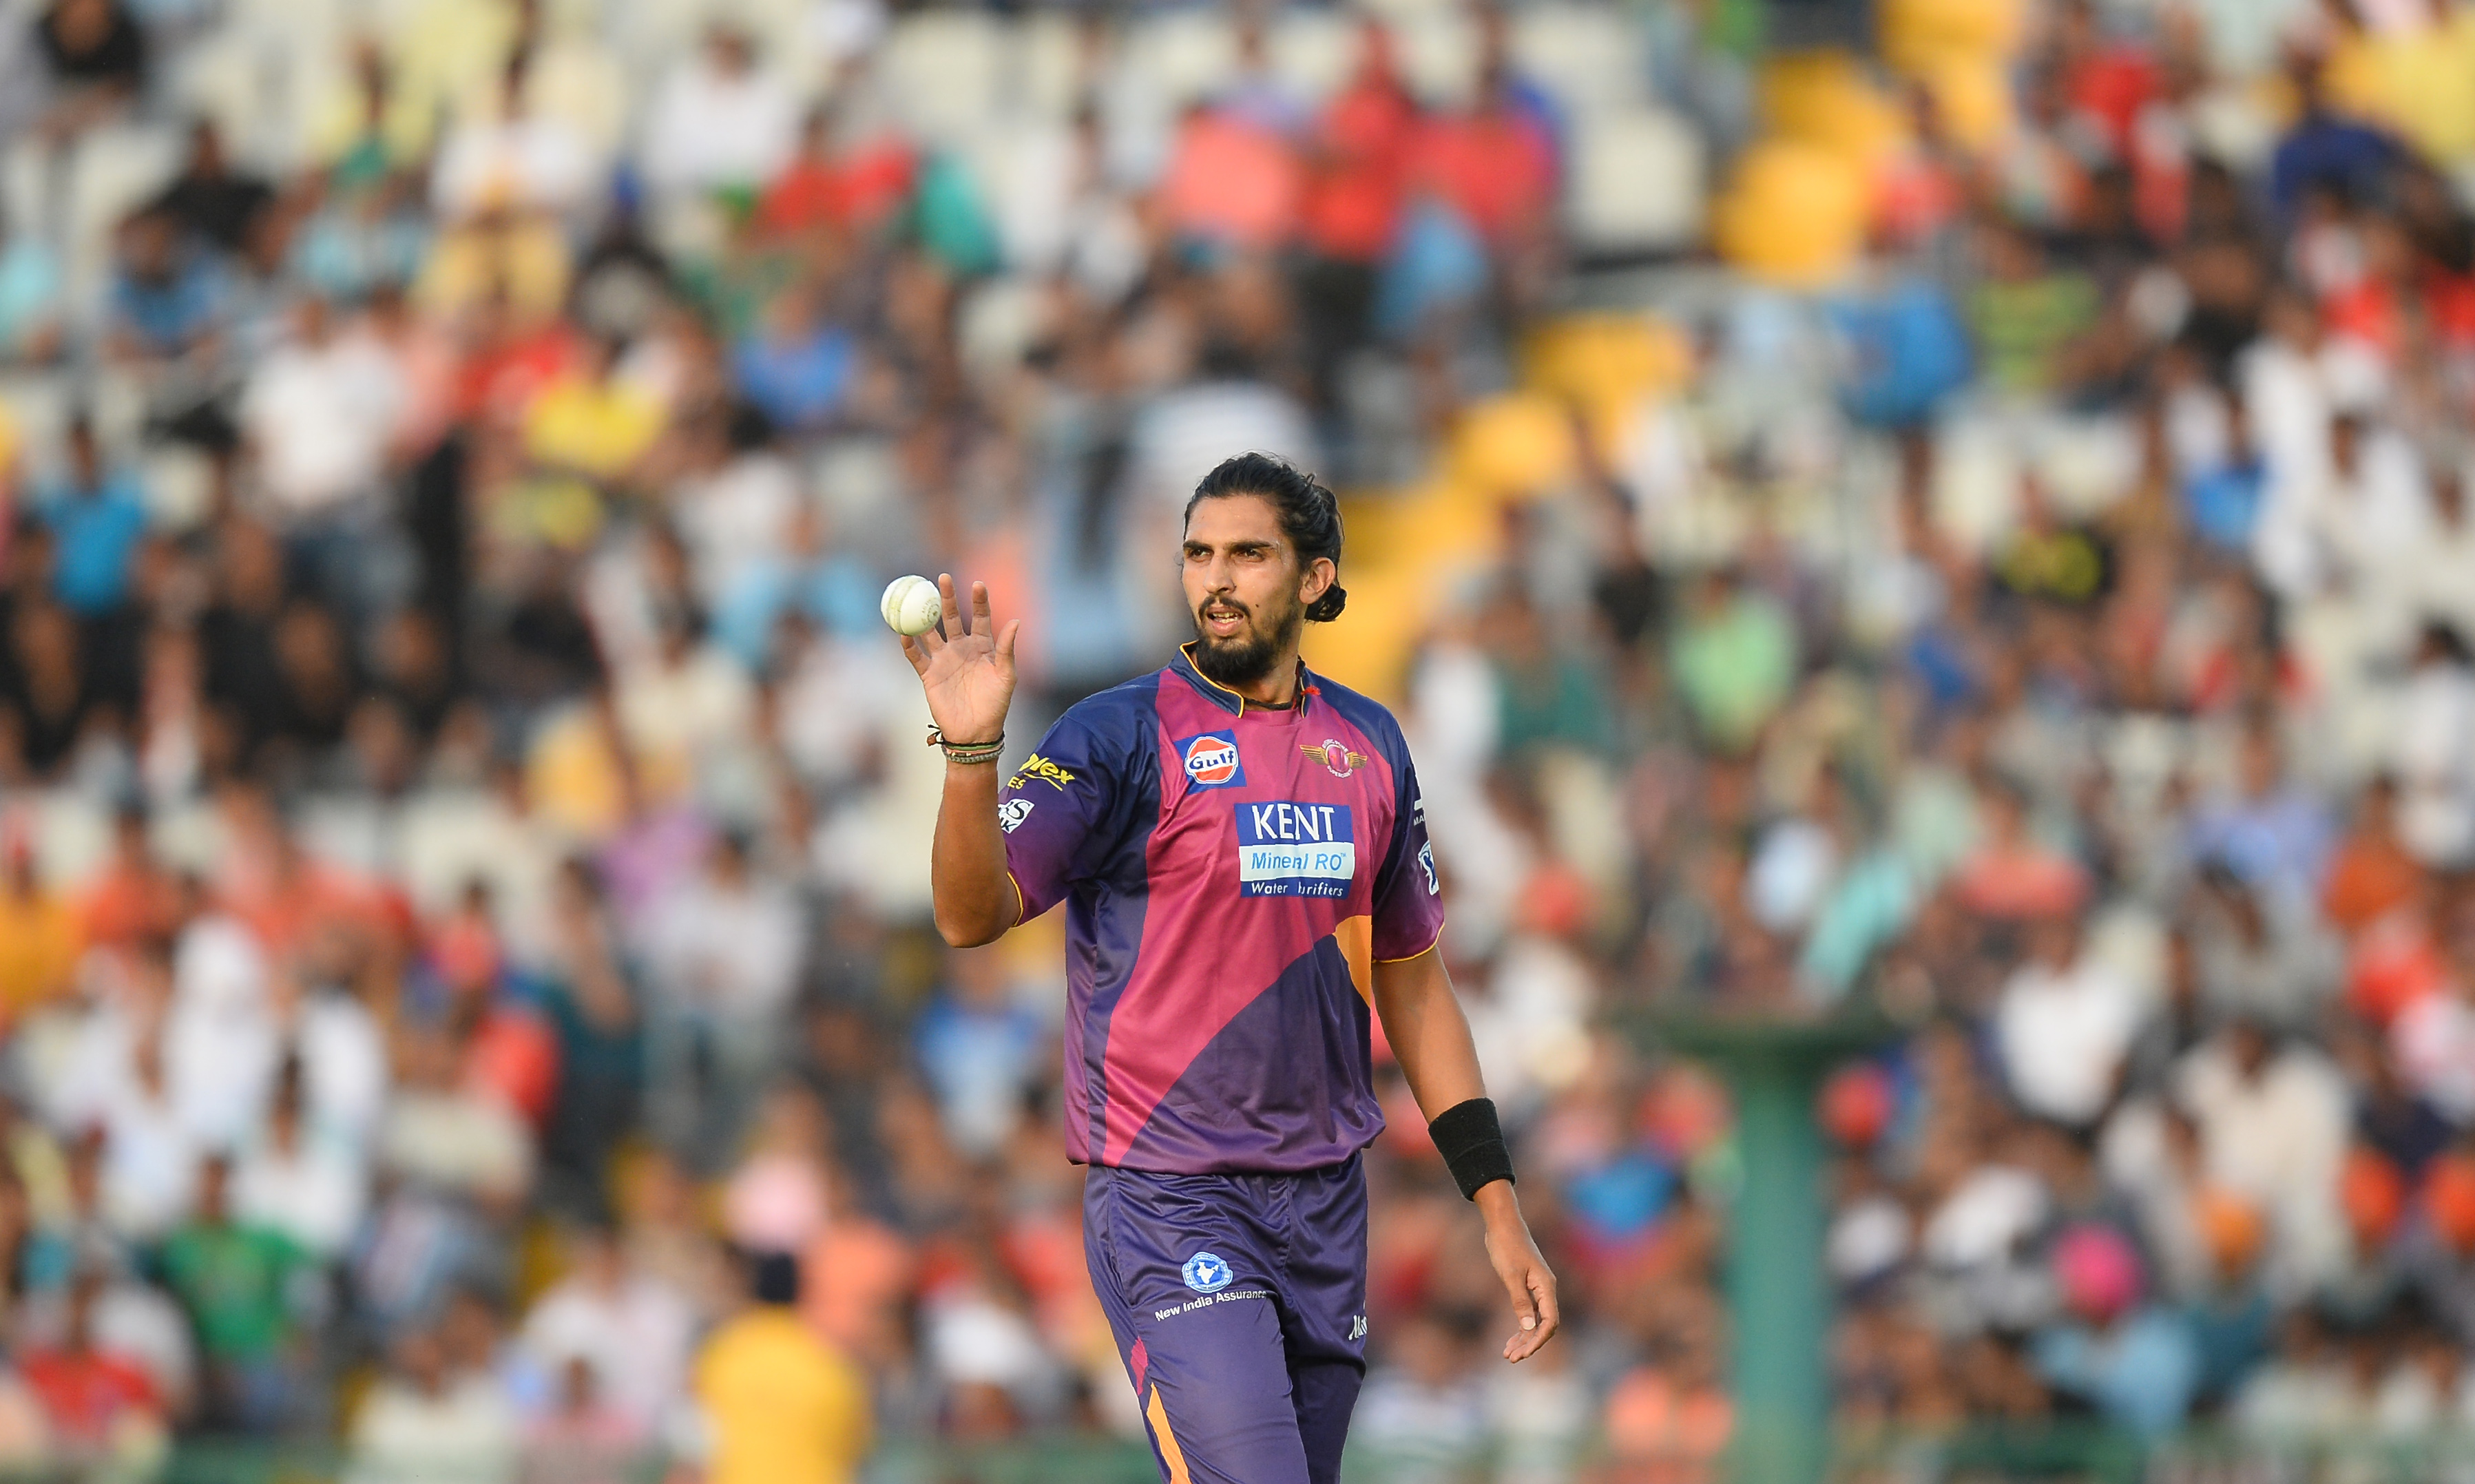 Ishant Sharma played for Rising Pune Supergiant last season but was let go this year. AFP